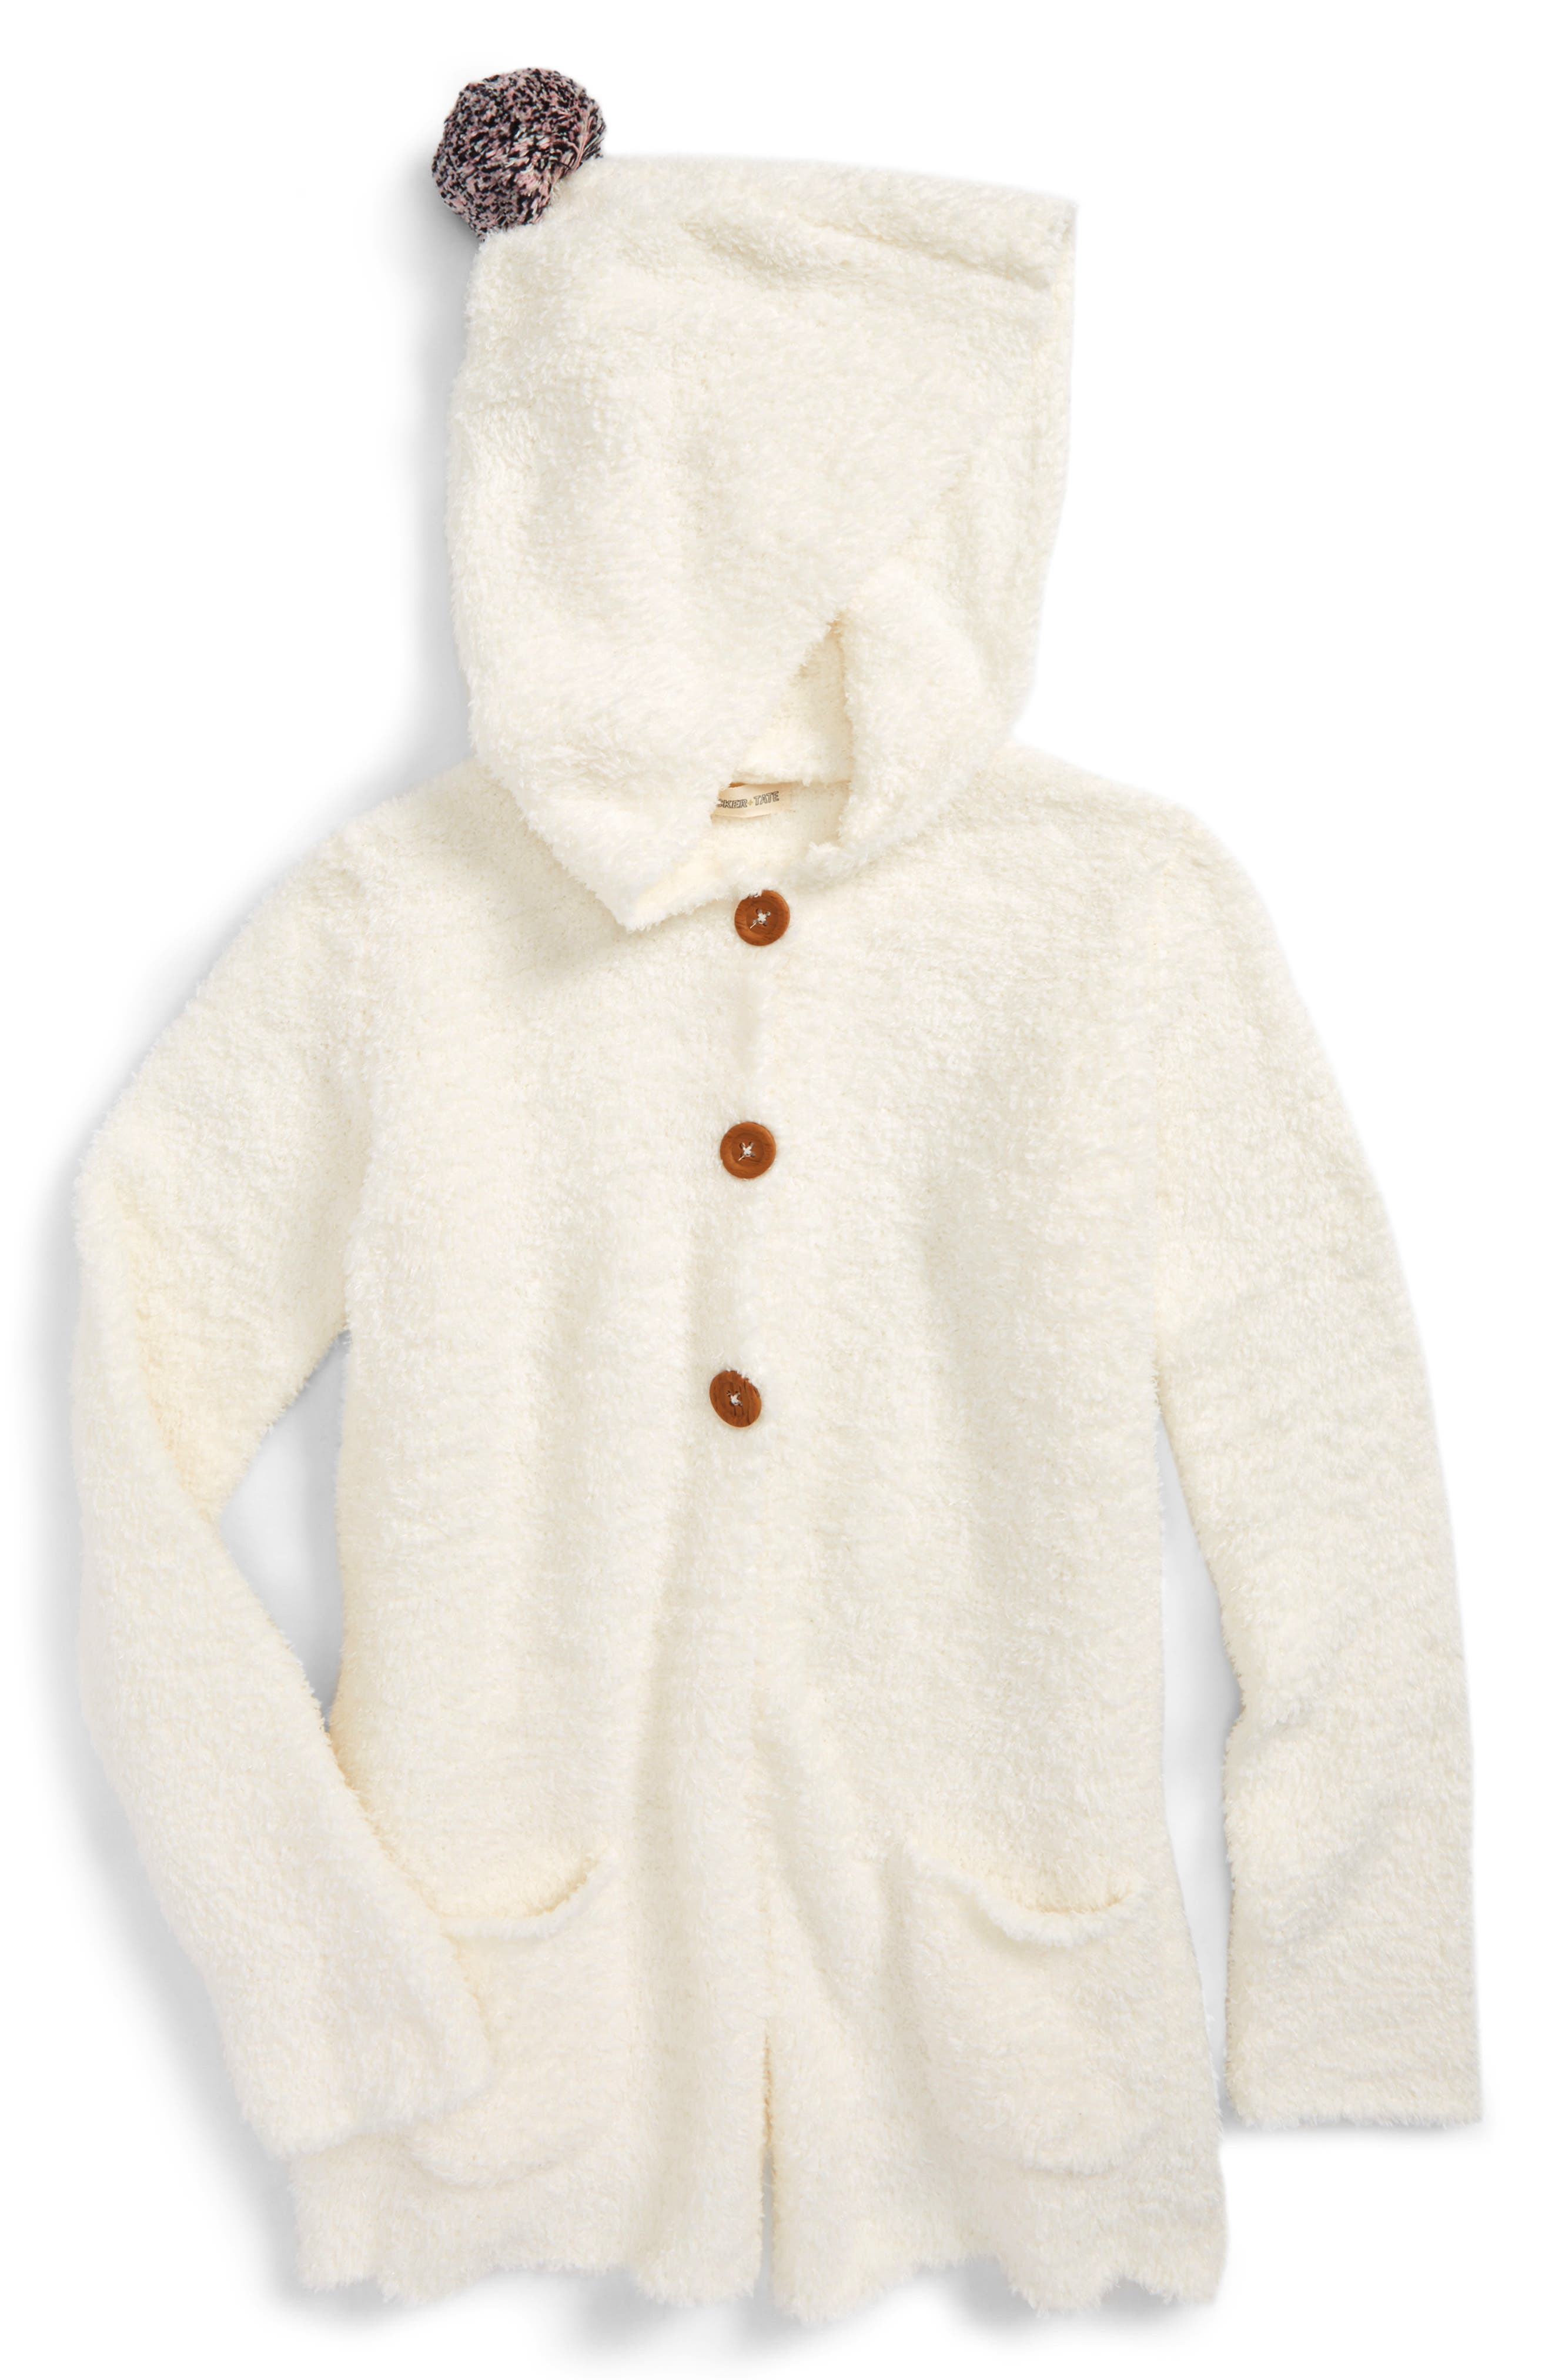 Cozy Hooded Cardigan,                             Main thumbnail 1, color,